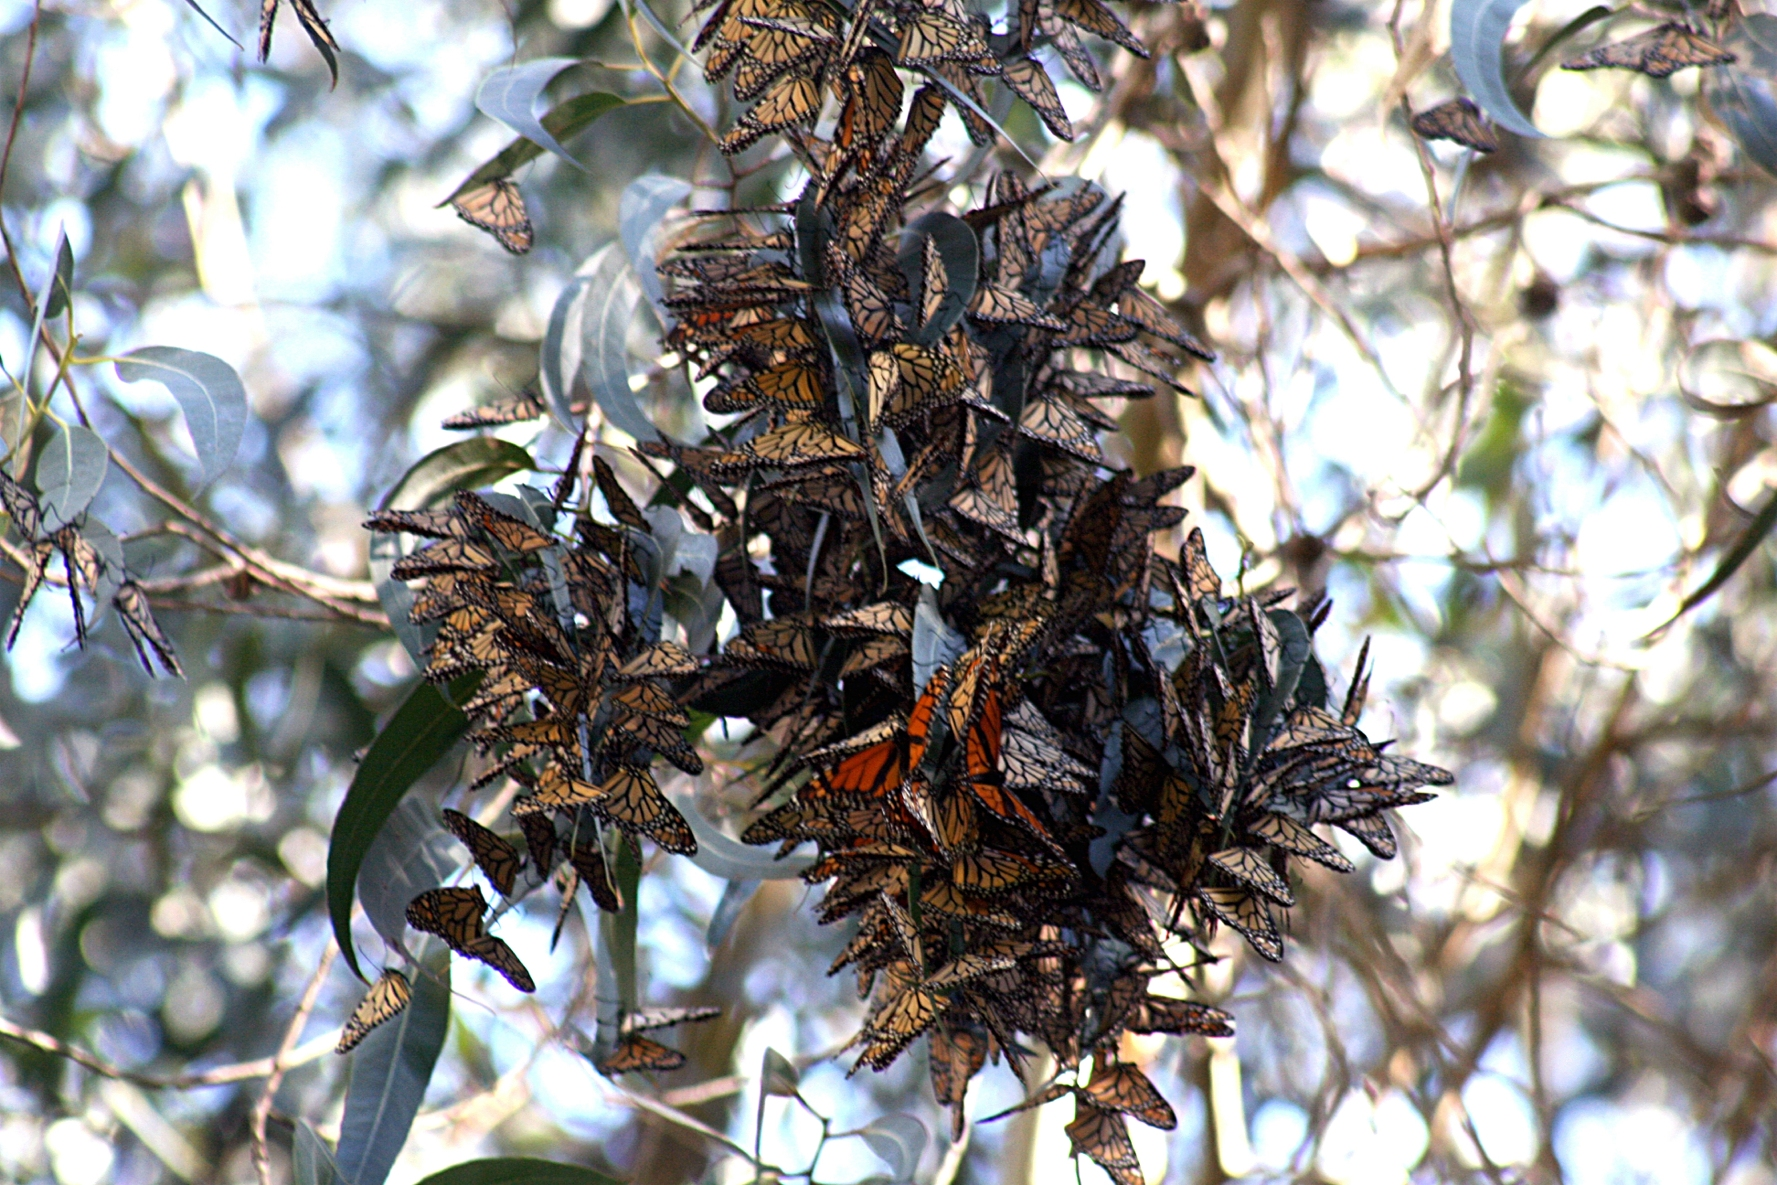 https://upload.wikimedia.org/wikipedia/commons/2/2e/Monarch_butterflies_in_Santa_Cruz-11.jpg